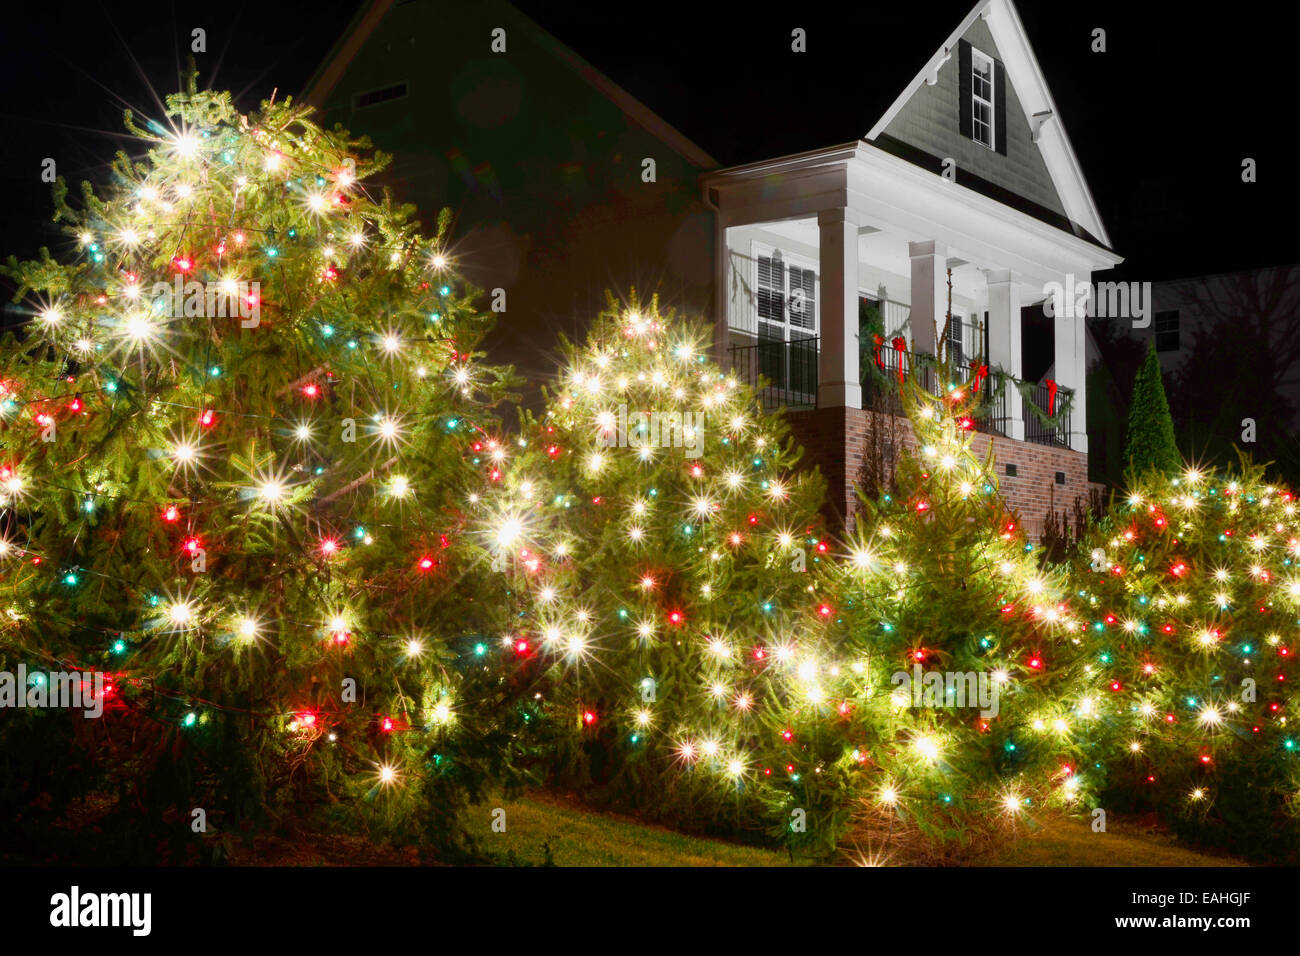 High Quality Outdoor Christmas Trees Have Been Decorated With Red, Green And White Lights  And Shot Against